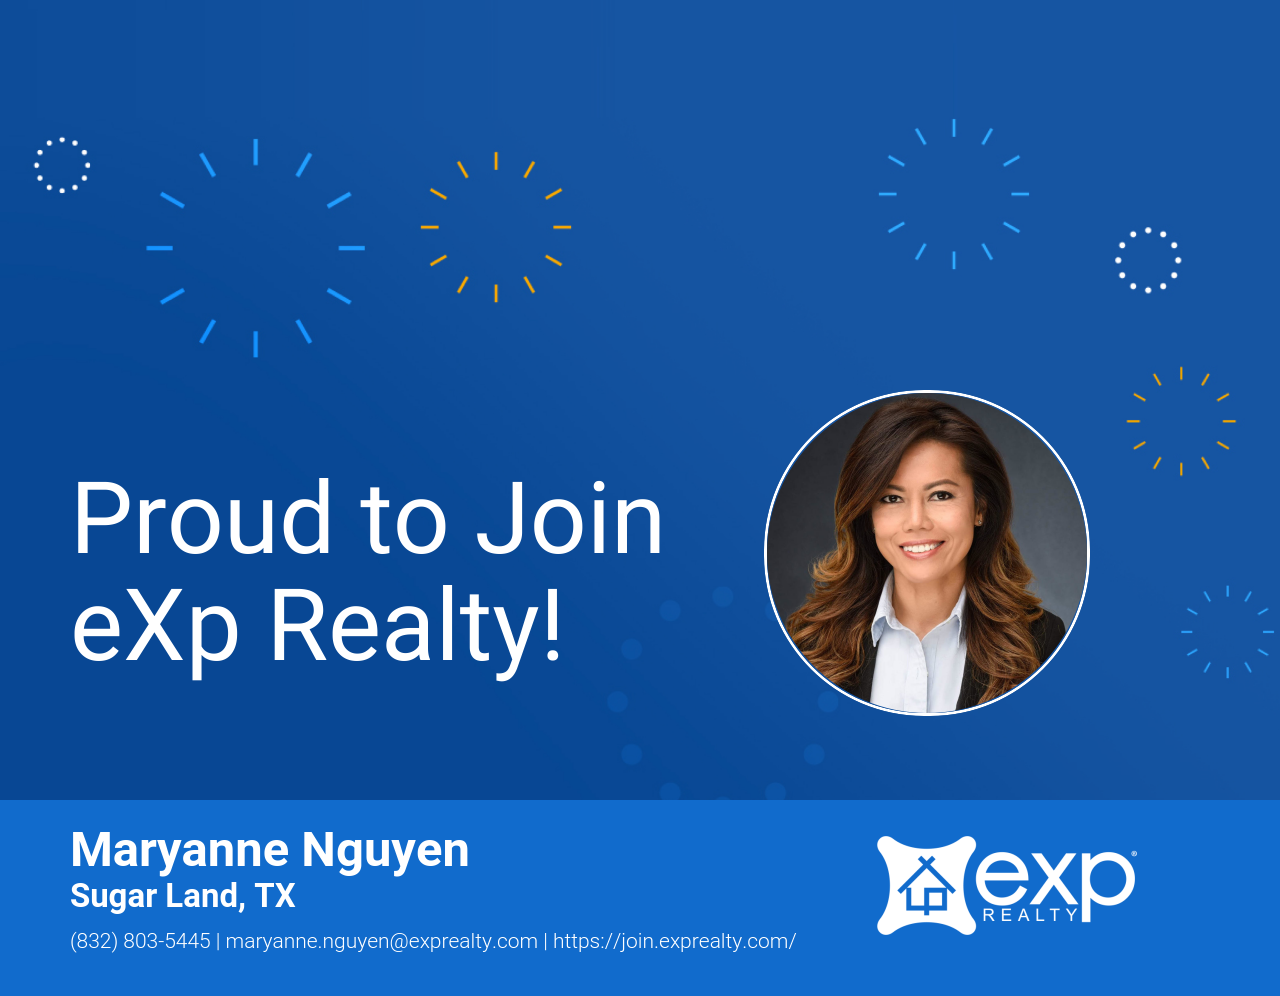 eXp Realty Welcomes Maryanne Nguyen!